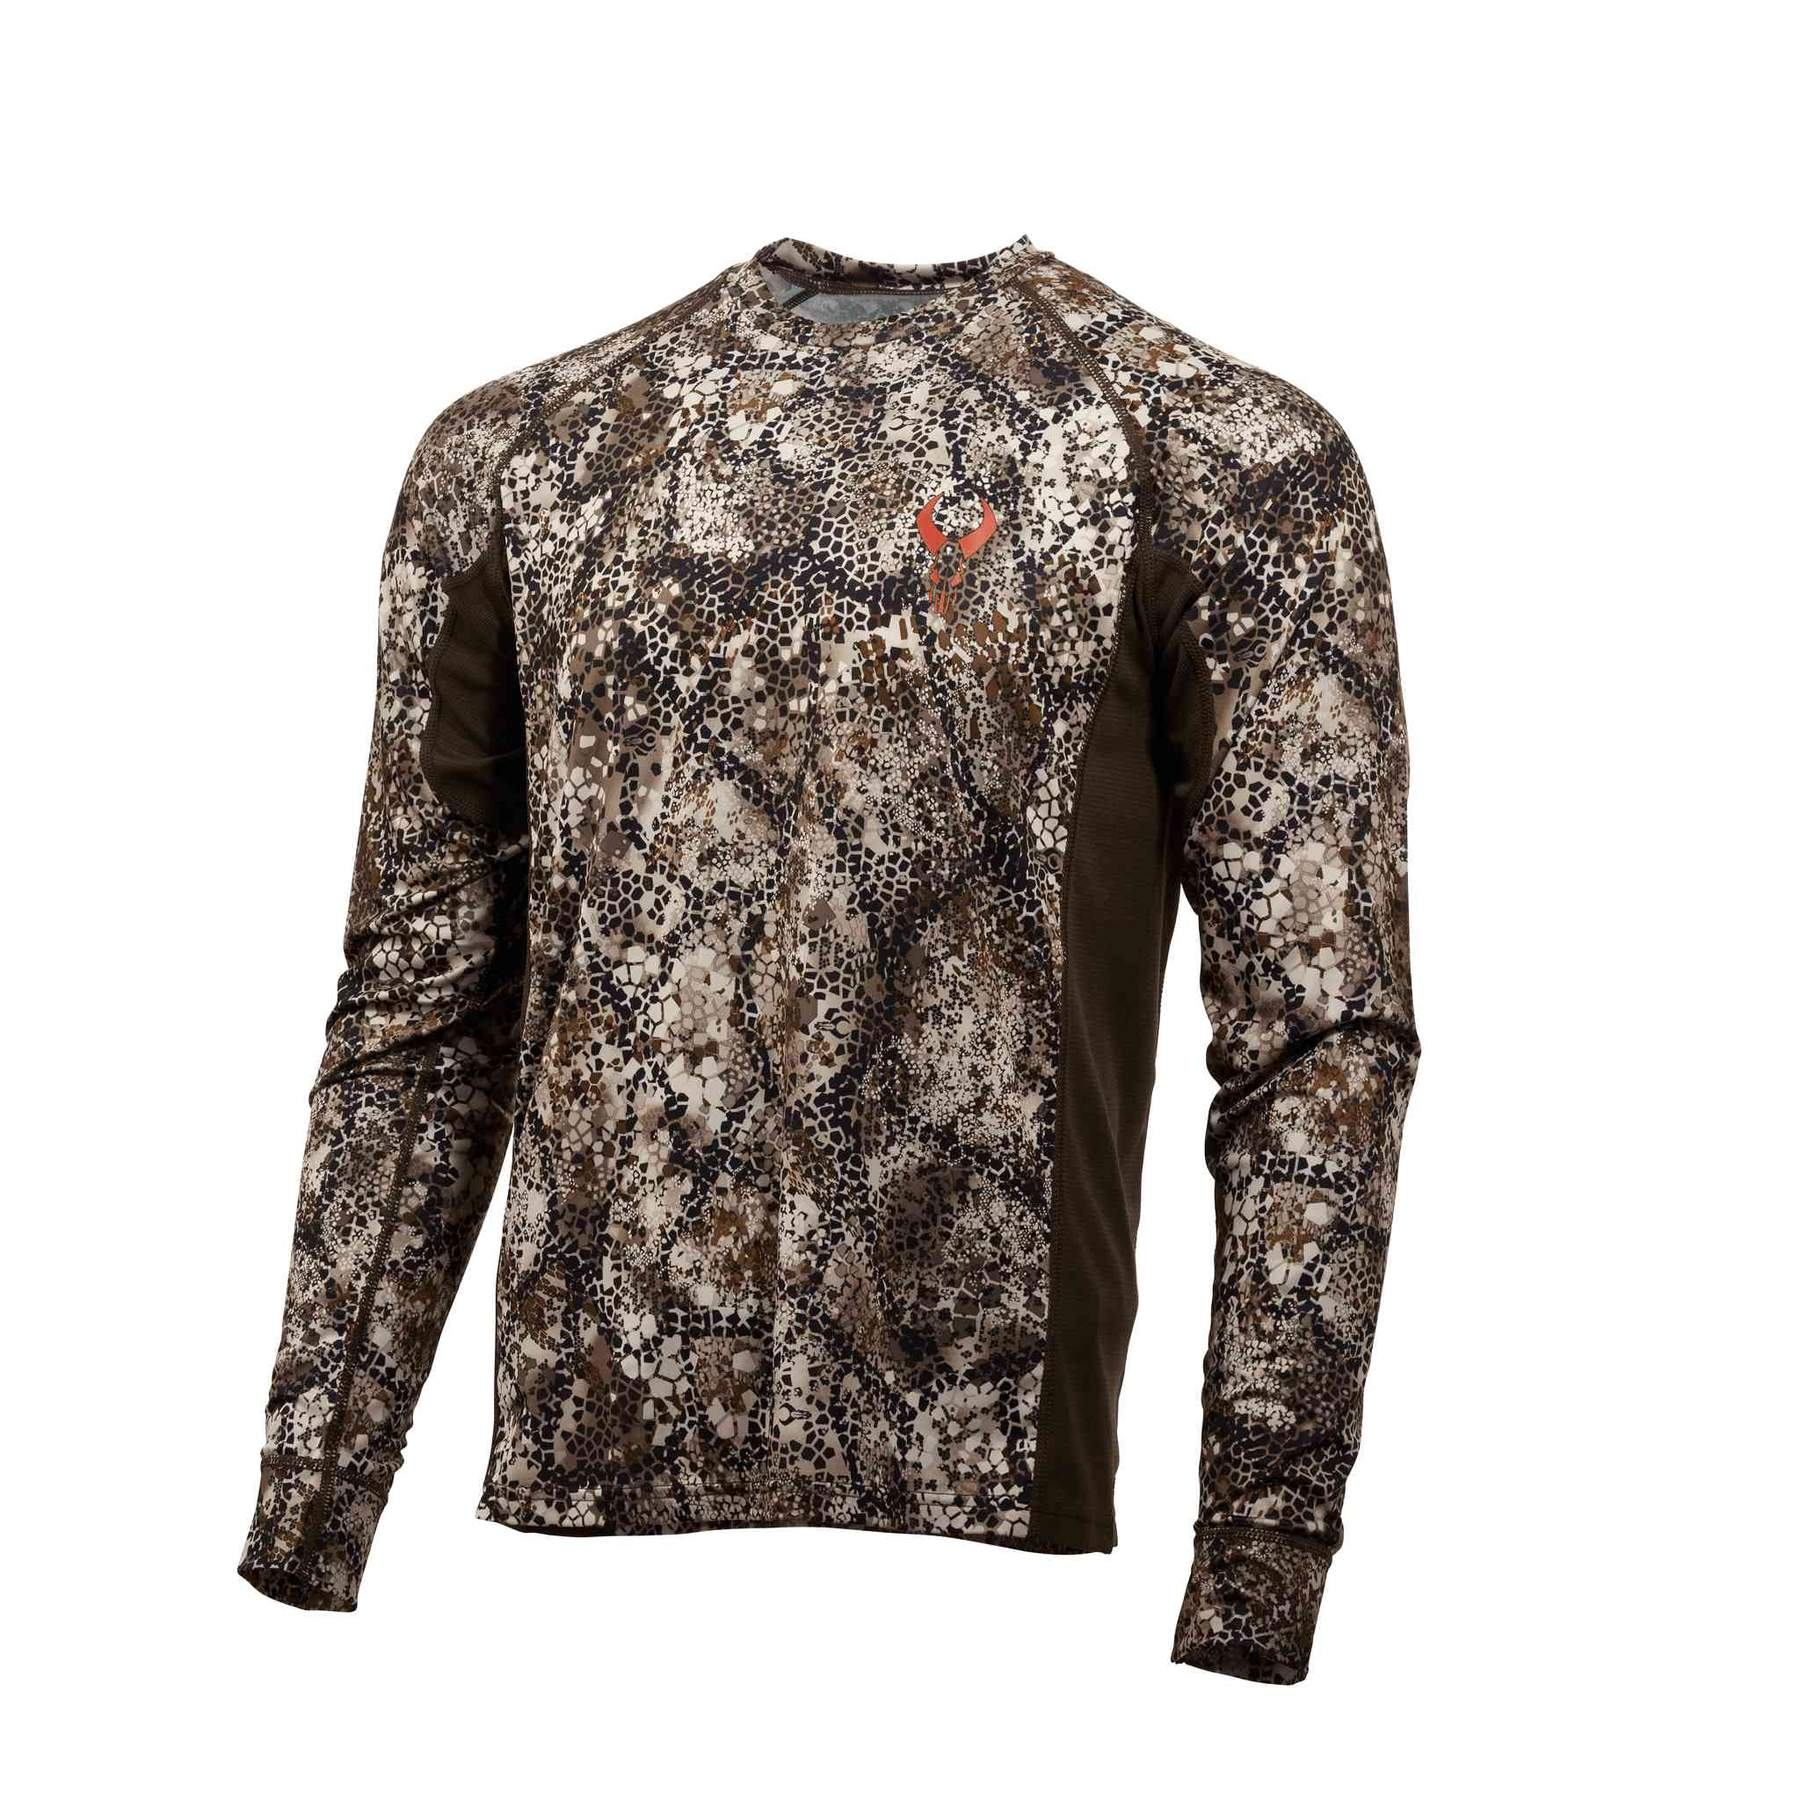 Badlands Altitude Long Sleeve Crew - Approach FX